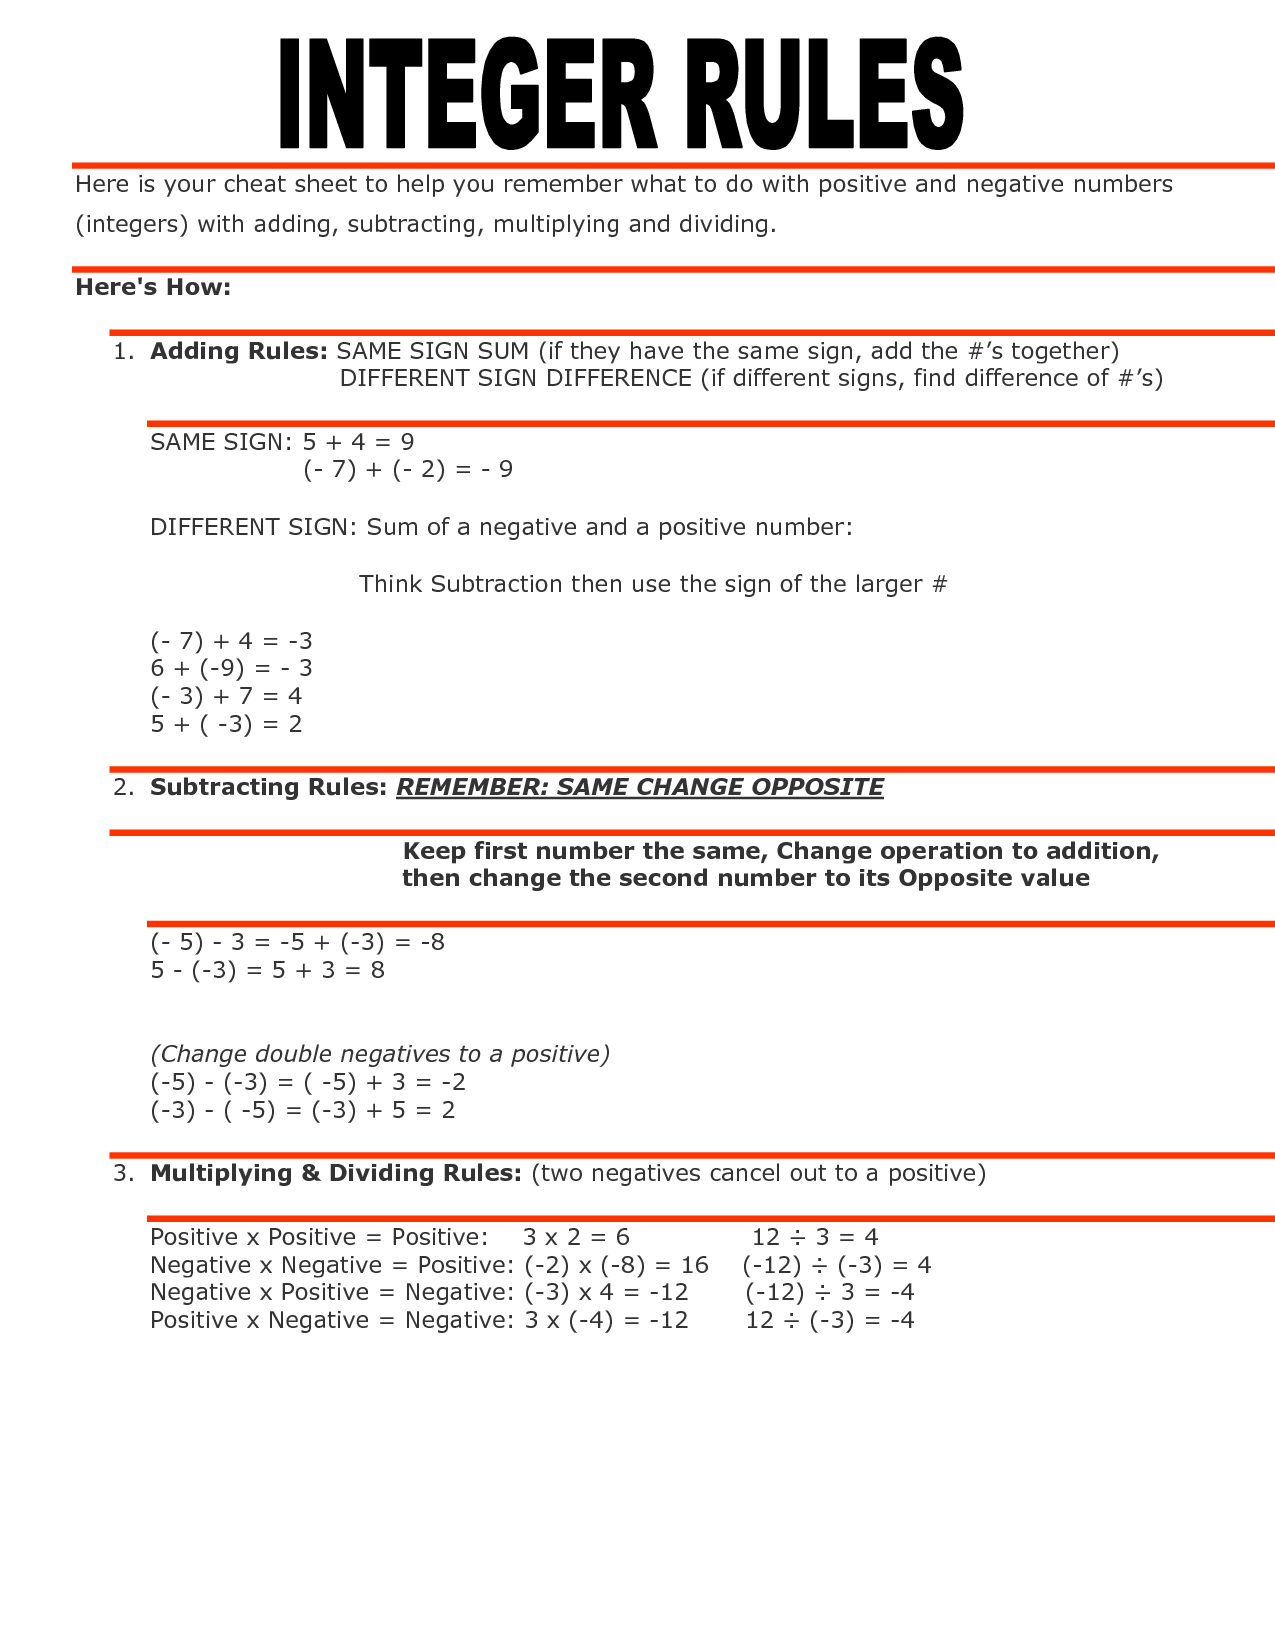 Worksheets Adding And Subtracting Integers Rules integer rules httpimg docstoccdn comthumborig114840275 png comthumborig